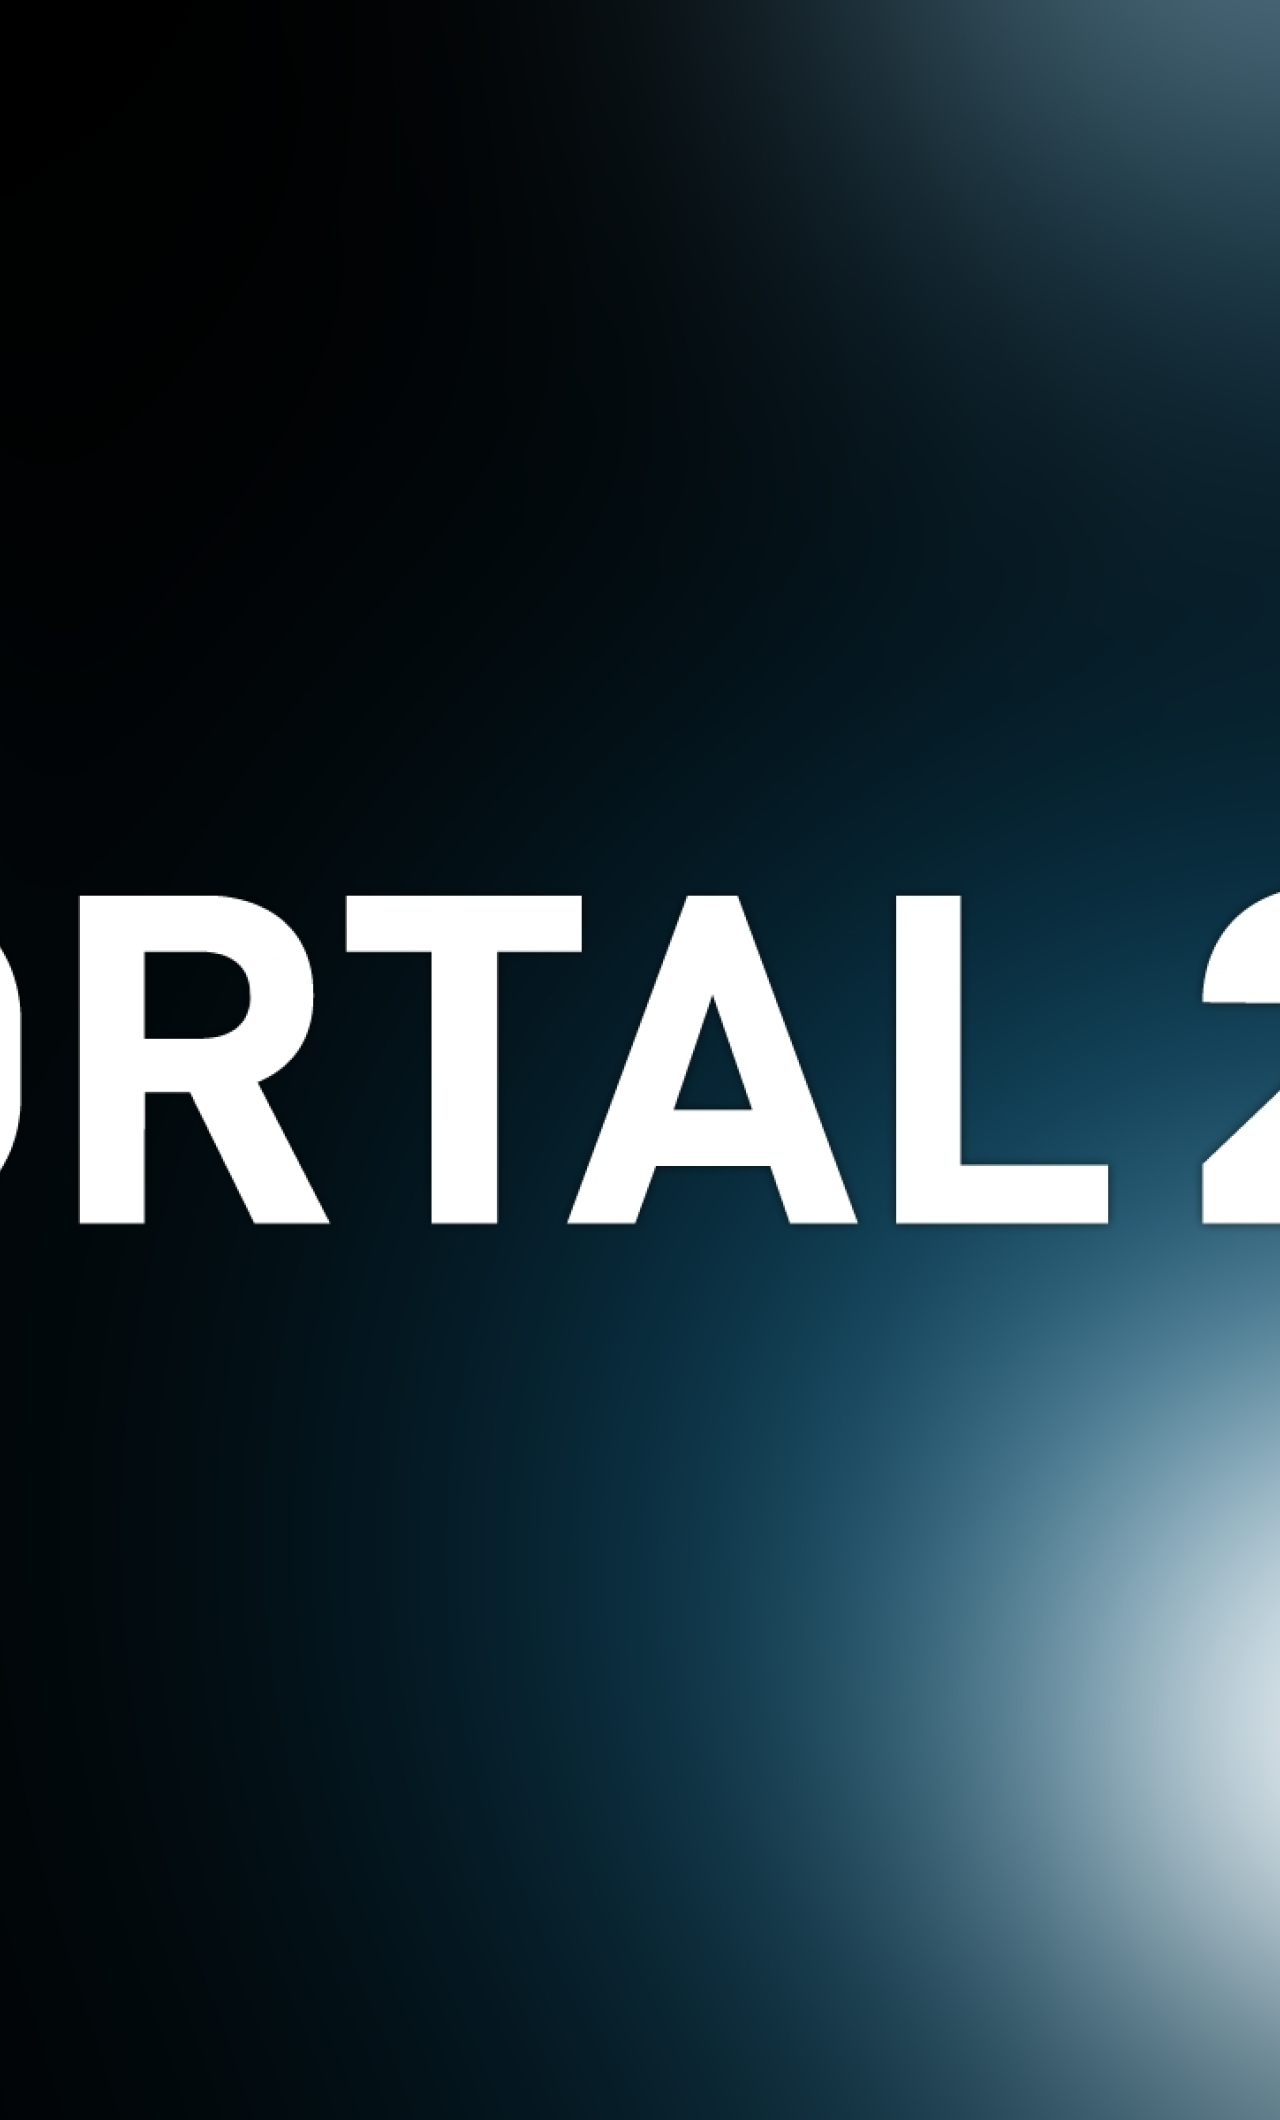 download portal 2, name, people 480x800 resolution, full hd wallpaper